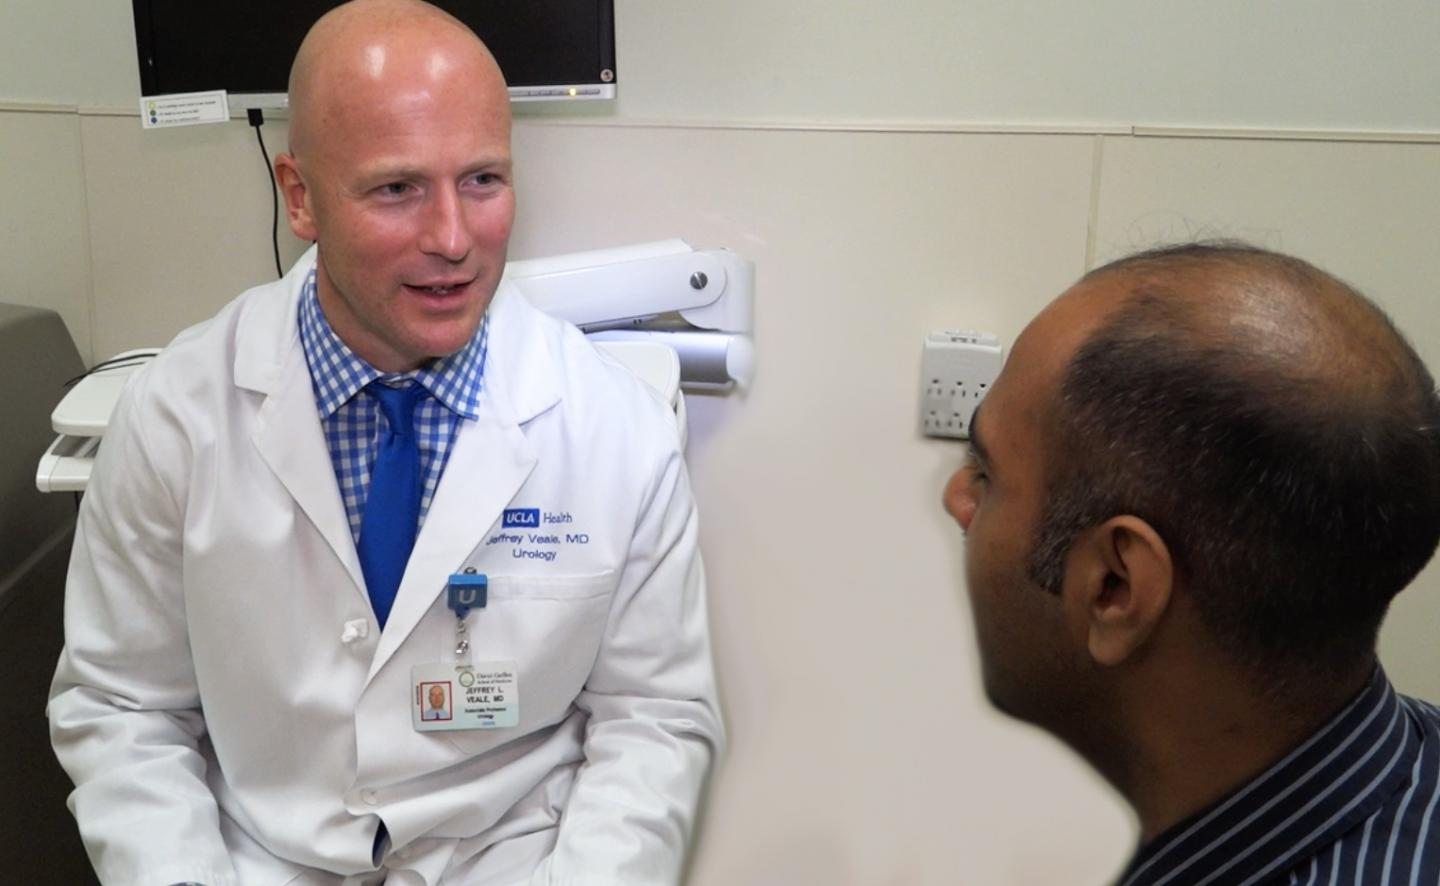 Dr. Veale with Patient